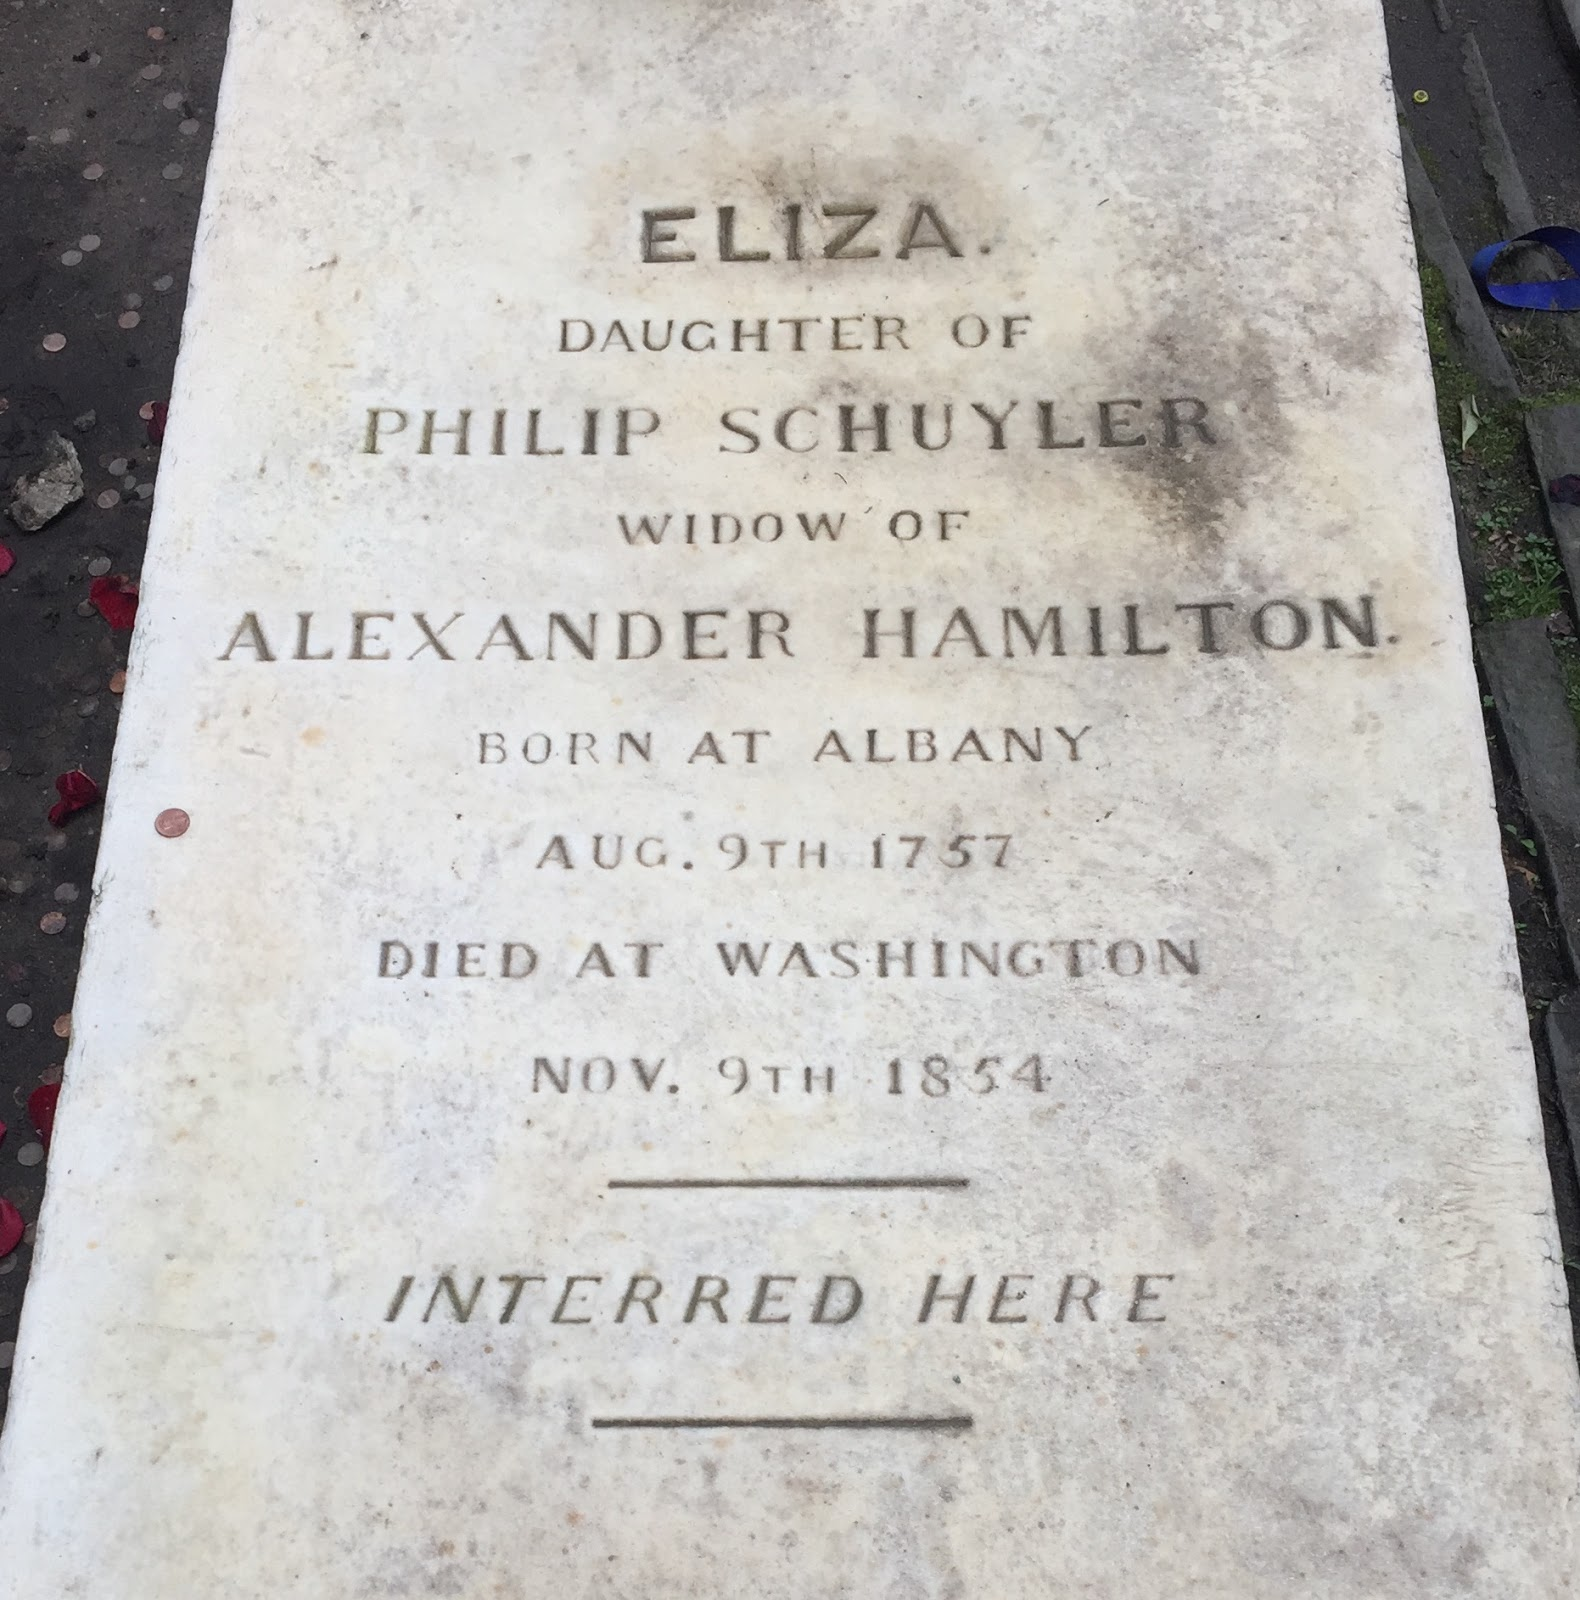 Not Long Ago, I Visited The Churchyard Of Trinity Church In Wall Street,  Where Eliza And Alexander Hamilton Are Buried Side By Side